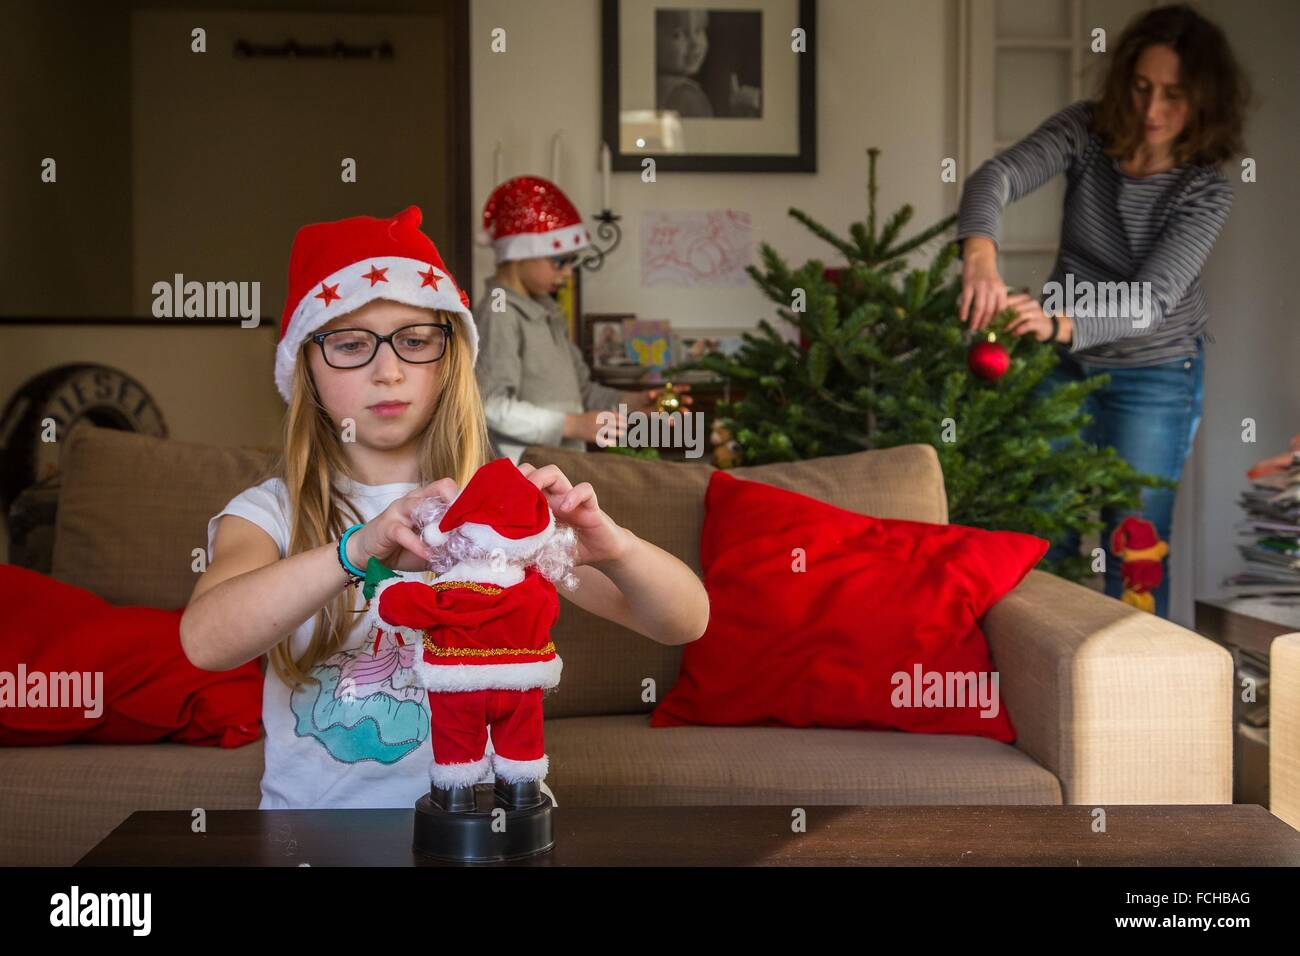 FAMILY DECORATING THE CHRISTMAS TREE - Stock Image